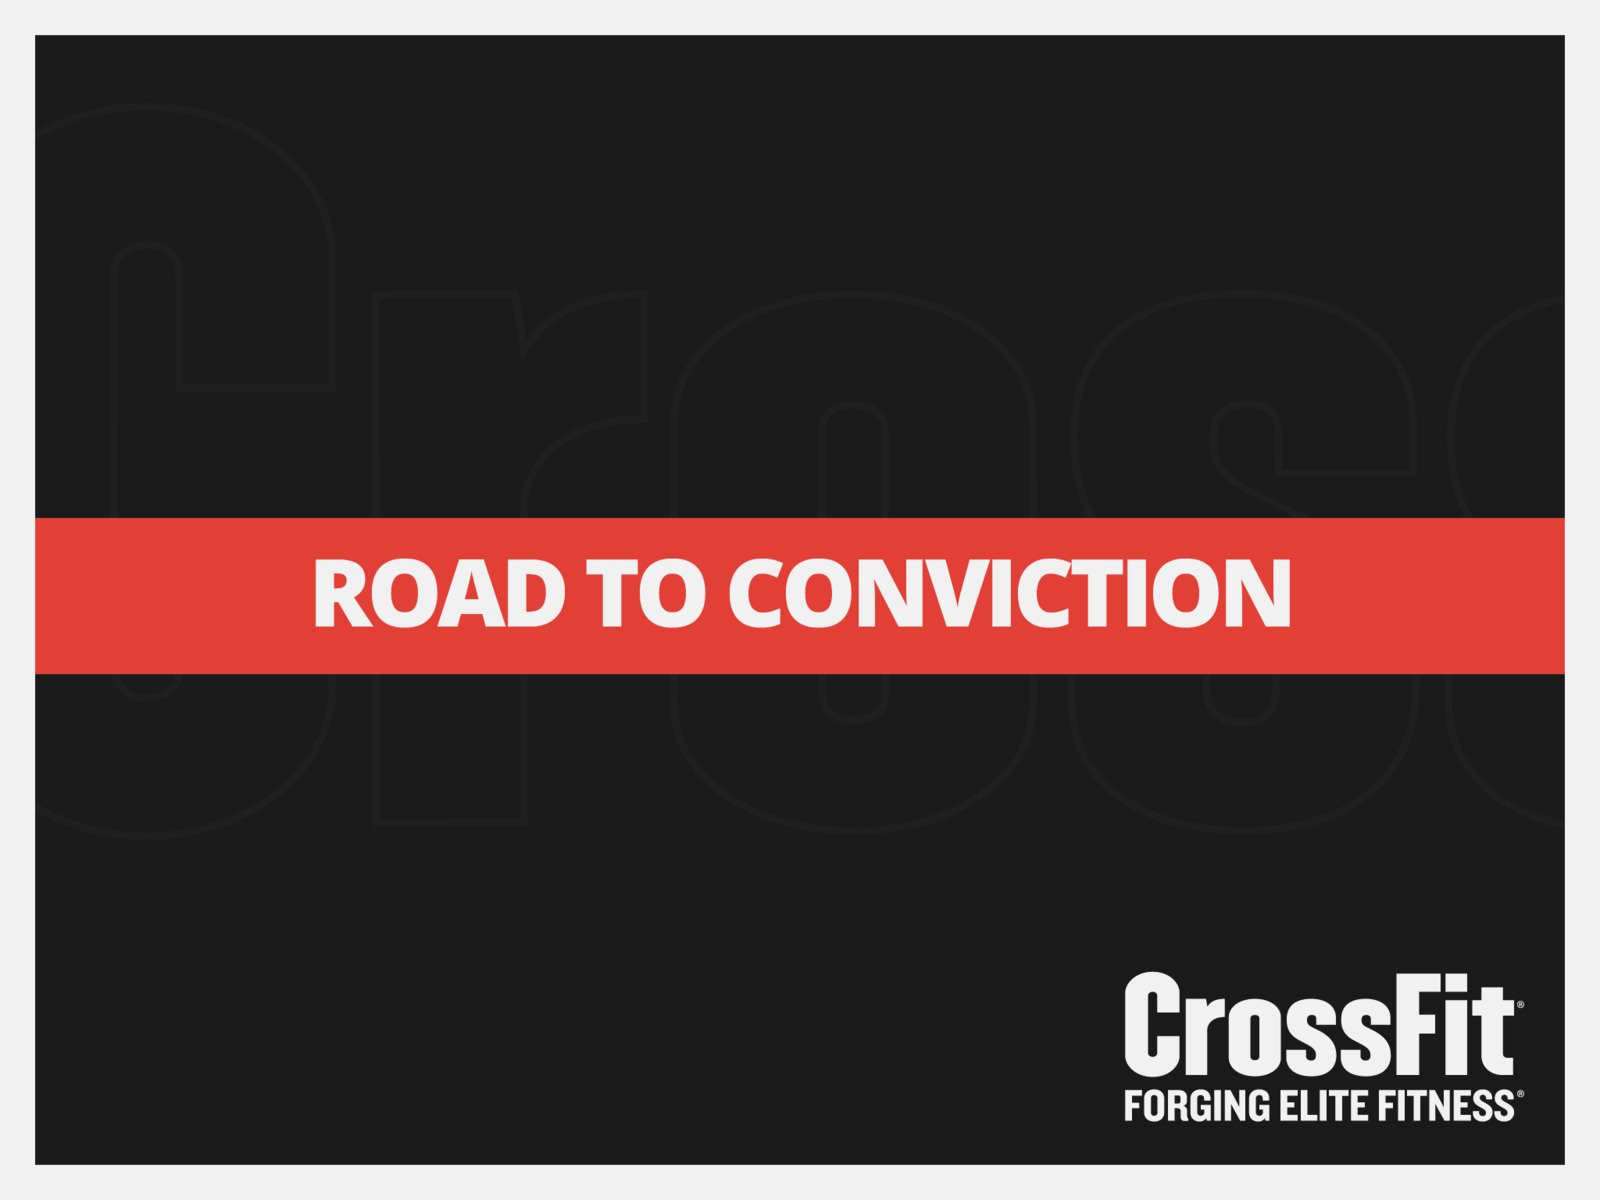 Road to Conviction